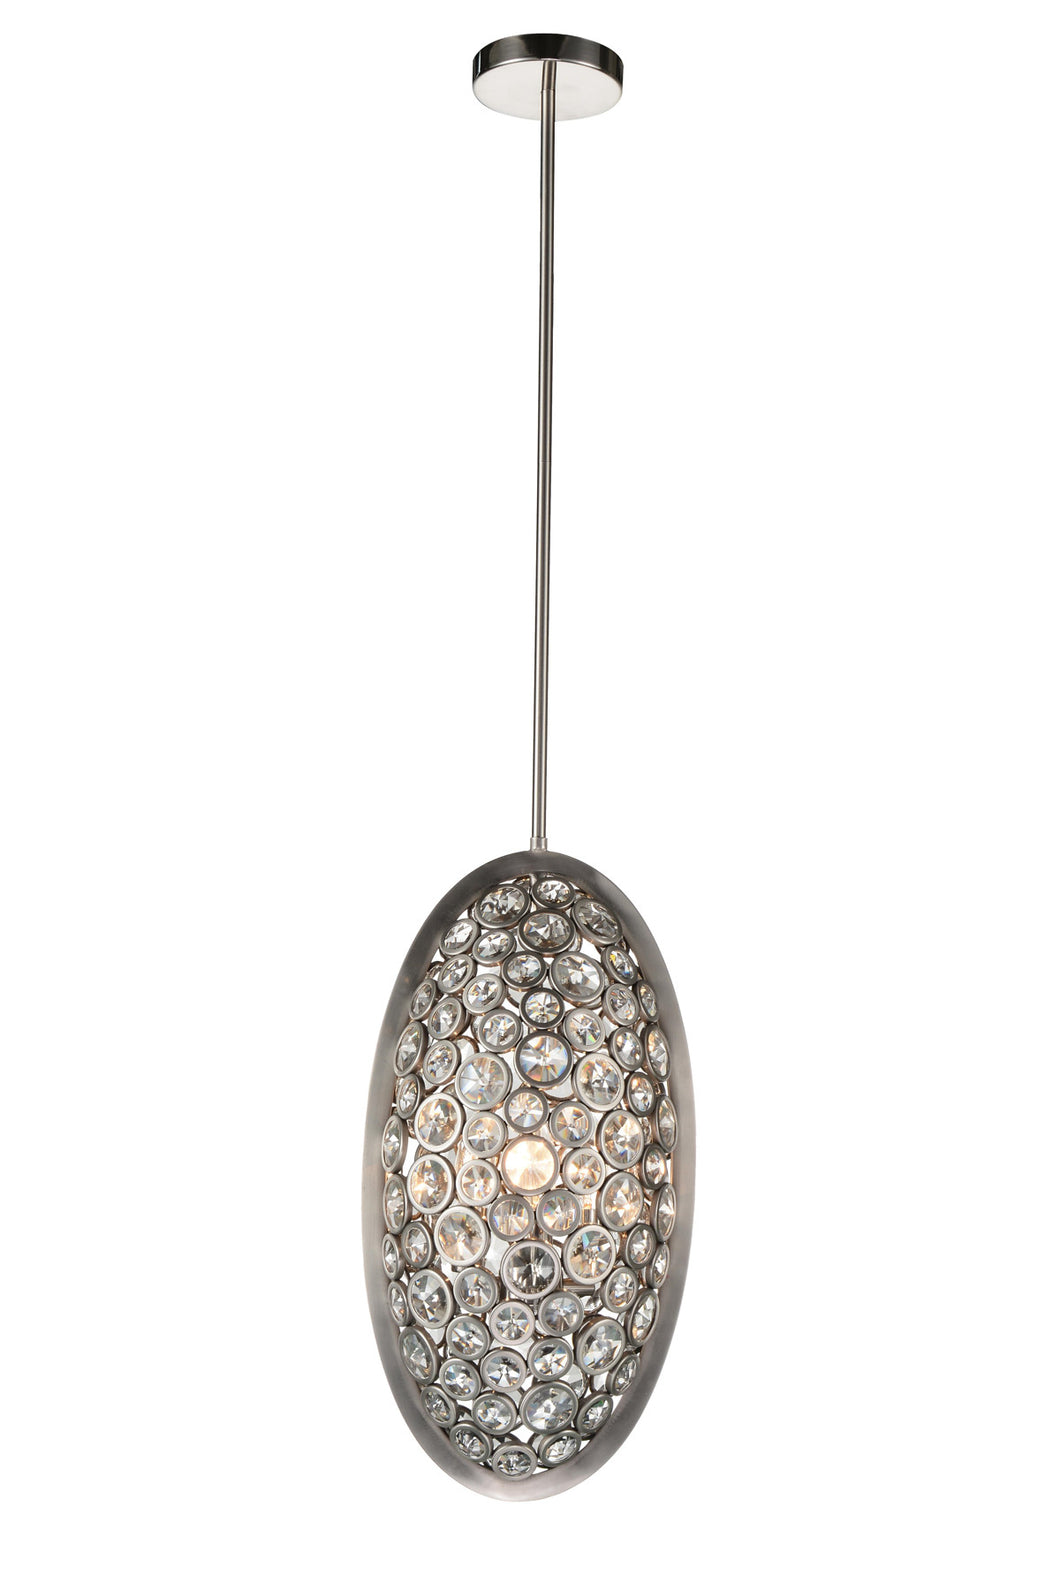 3 Light  Mini Pendant with Satin Nickel finish